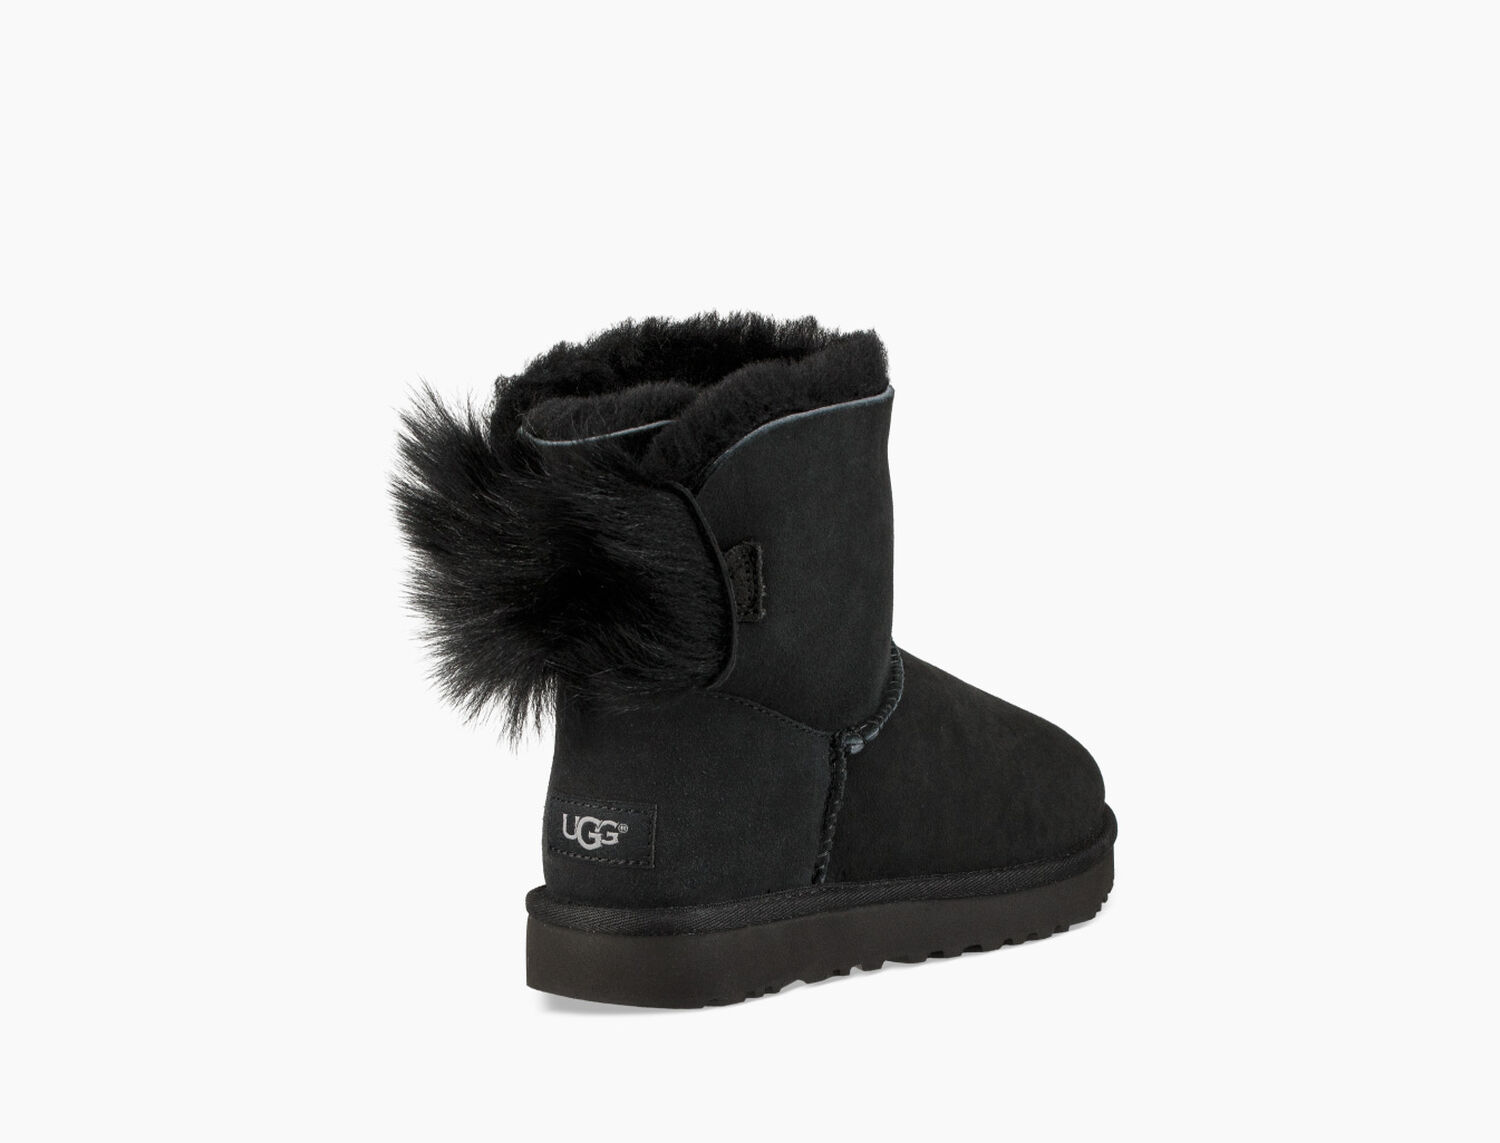 Zoom Classic Mini Fluff Bow Boot - Image 1 of 6 38516d4a4